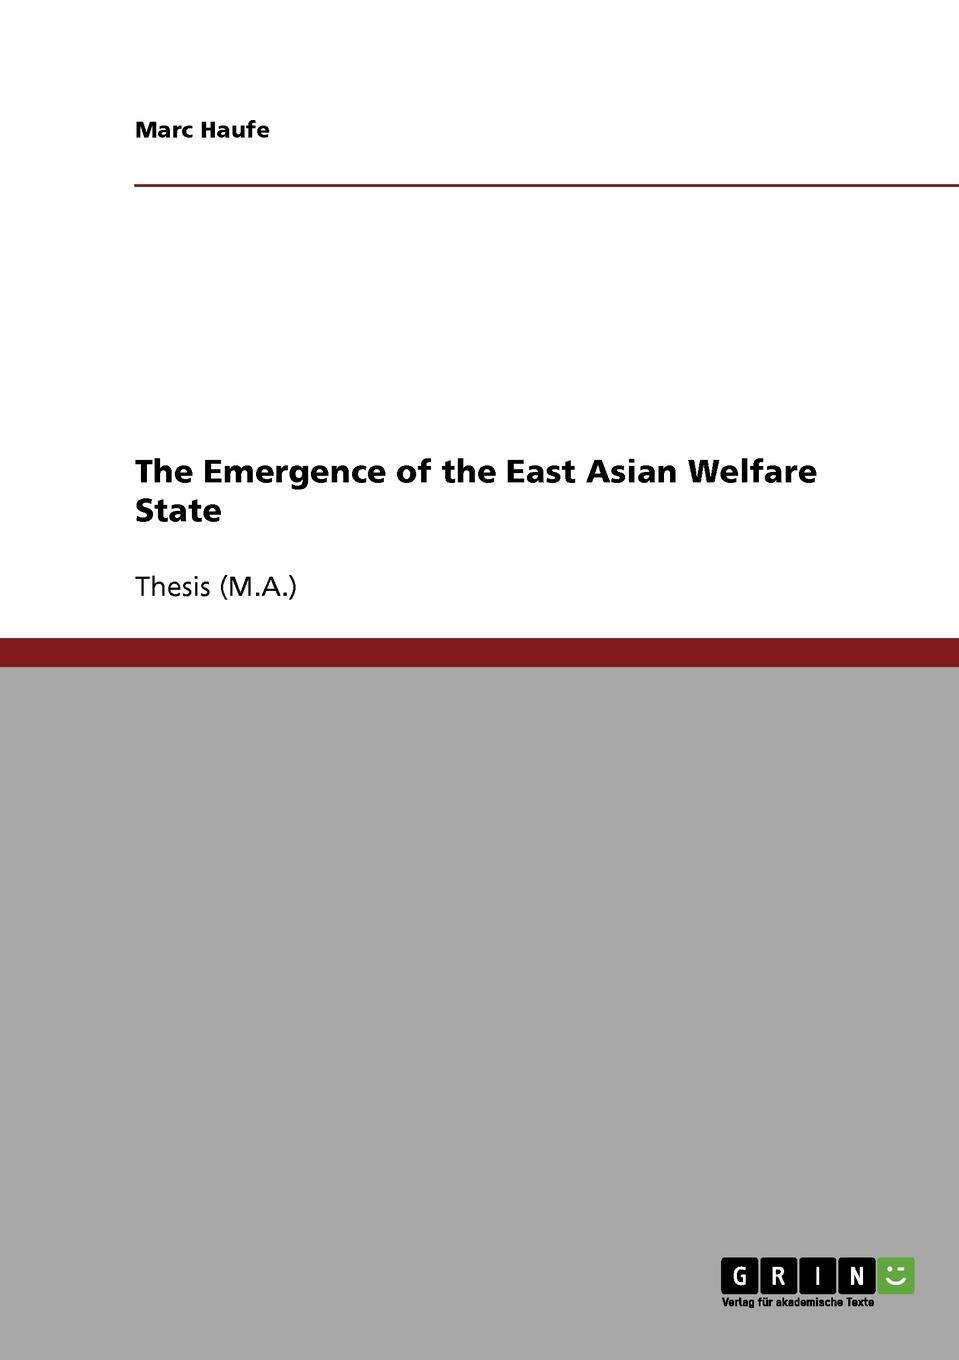 Marc Haufe The Emergence of the East Asian Welfare State